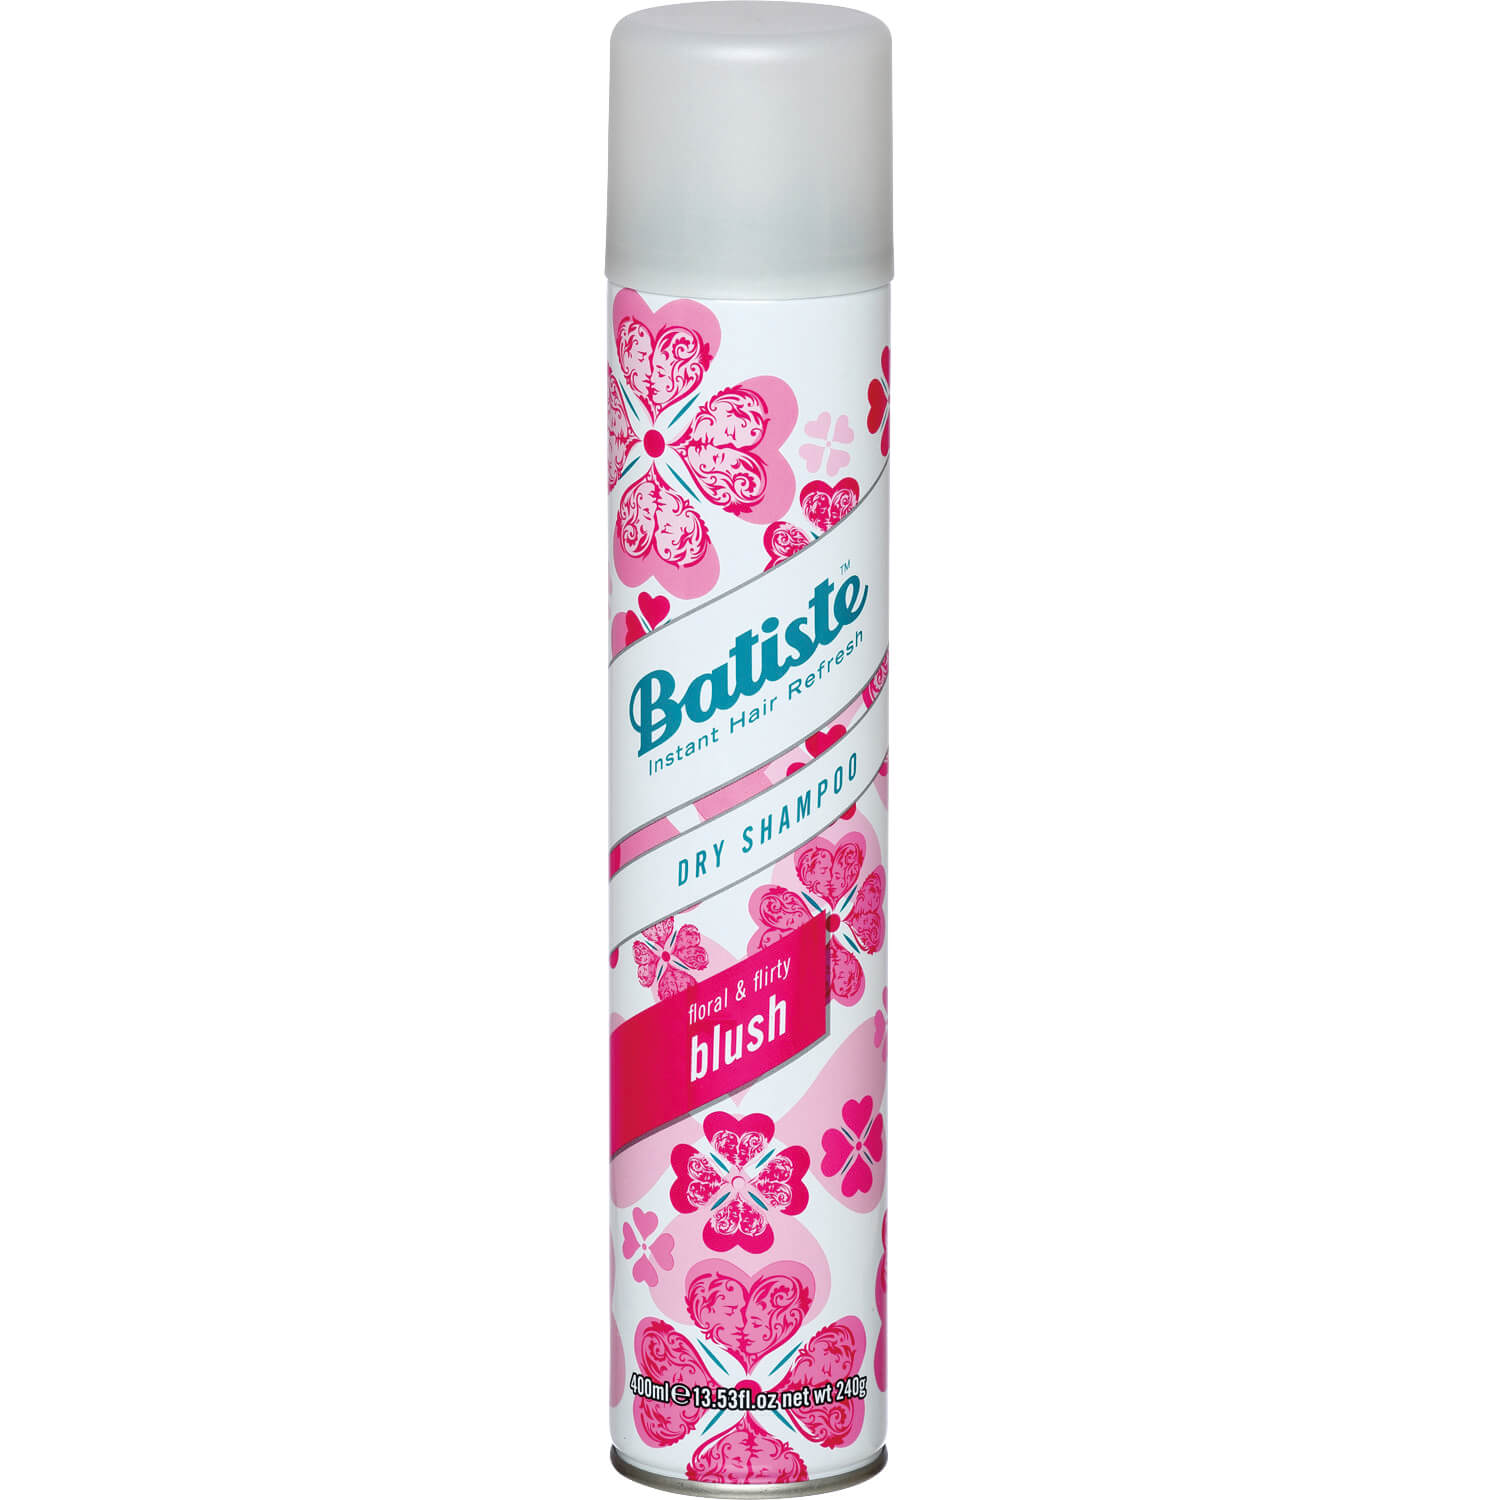 Batiste Dry Shampoo Blush 200ml Life Pharmacy New Zealand 200 Ml